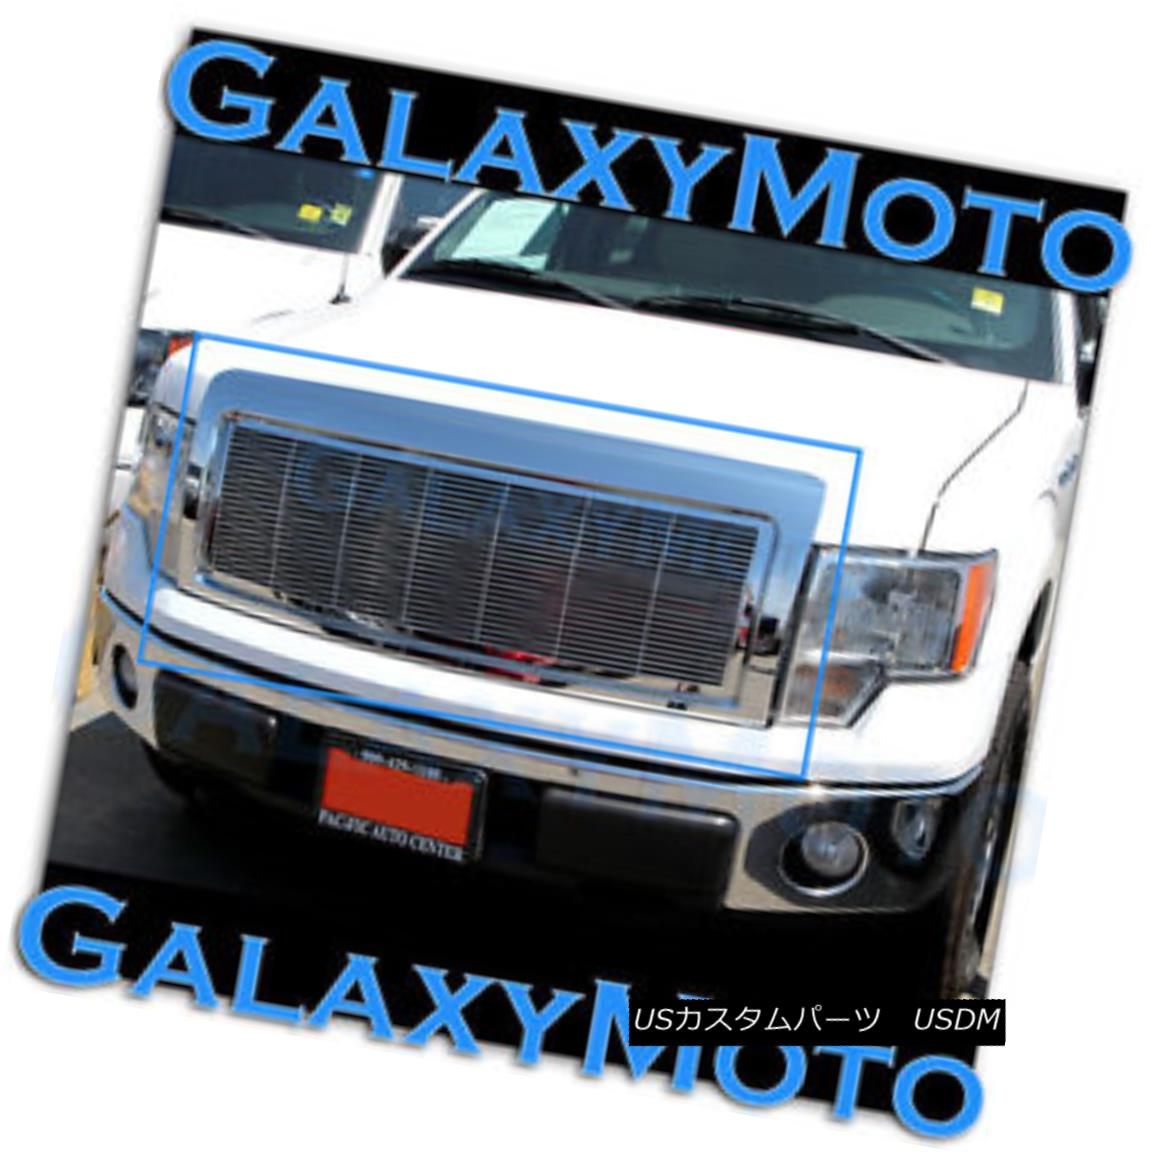 グリル 09-14 Ford F150 Front Hood All Chrome Billet Grille+Complete Shell FX+STX+XLT+XL 09-14フォードF150フロントフードすべてのクロムビレットグリル+完成 e Shell FX + STX + XLT + XL